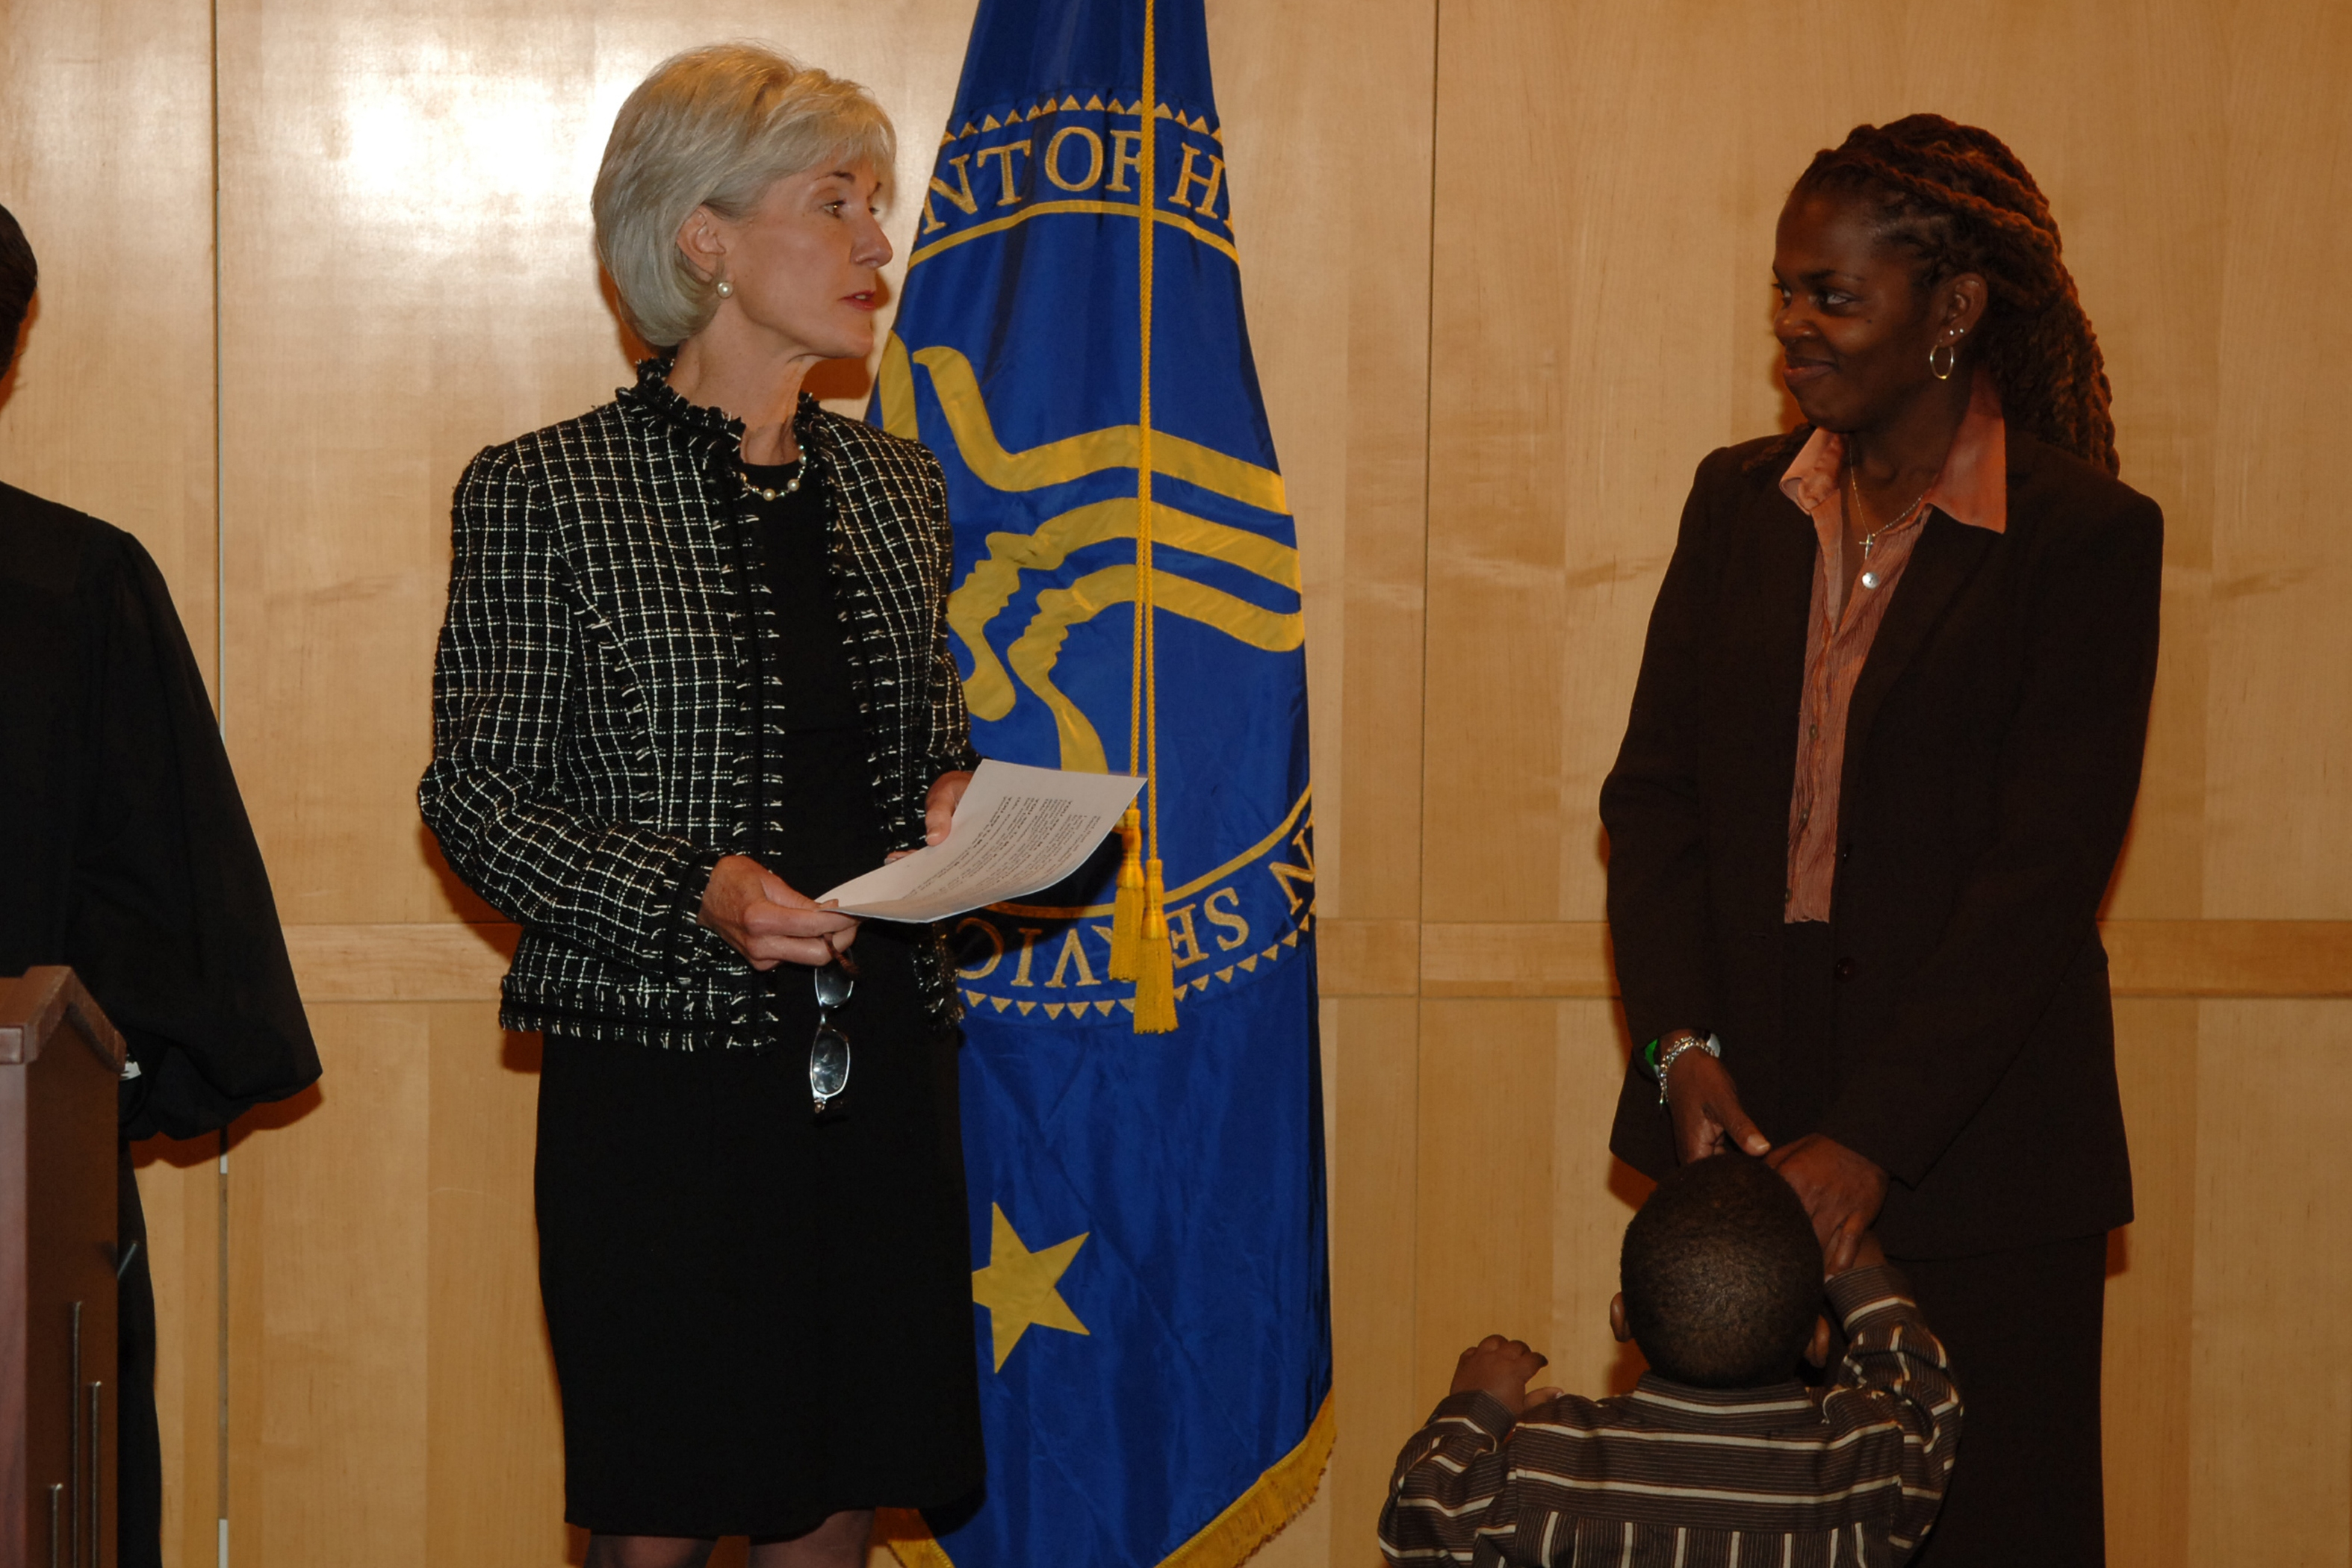 Secretary Sebelius Presides Over Adoption Ceremony